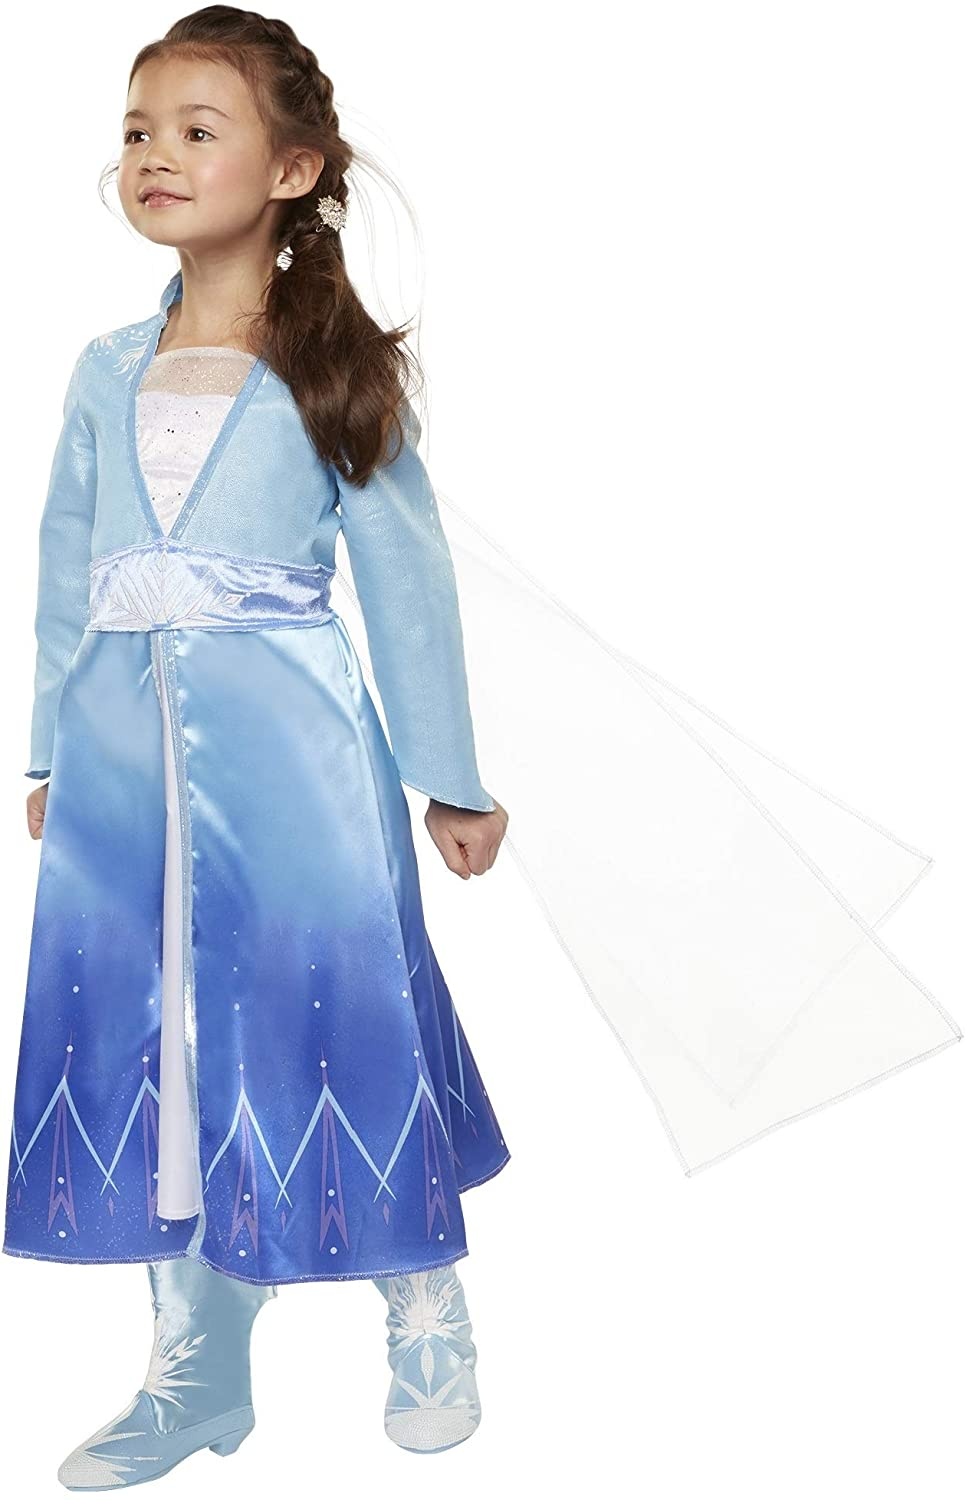 Amazon.com: Disney Frozen 2 Elsa Adventure - Vestido para ...